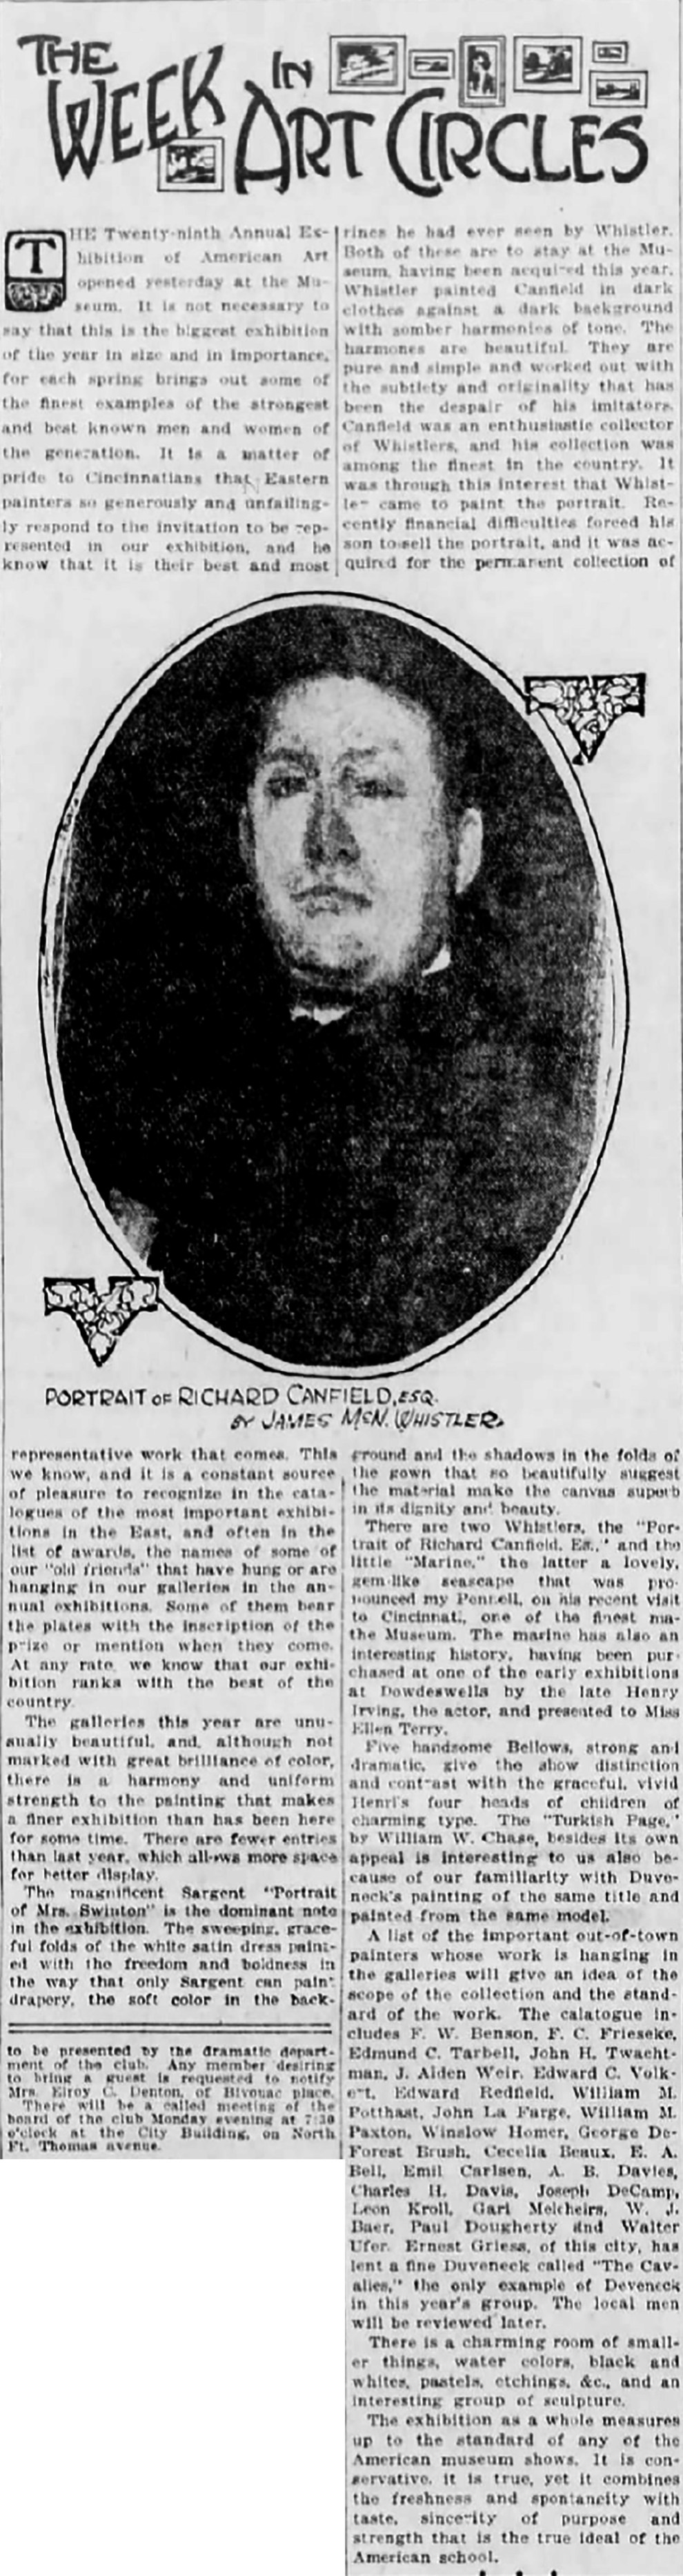 "The Cincinnati Enquirer, Cincinnati, OH, ""The Week in Art Circles"", May 28, 1922, Second Edition"